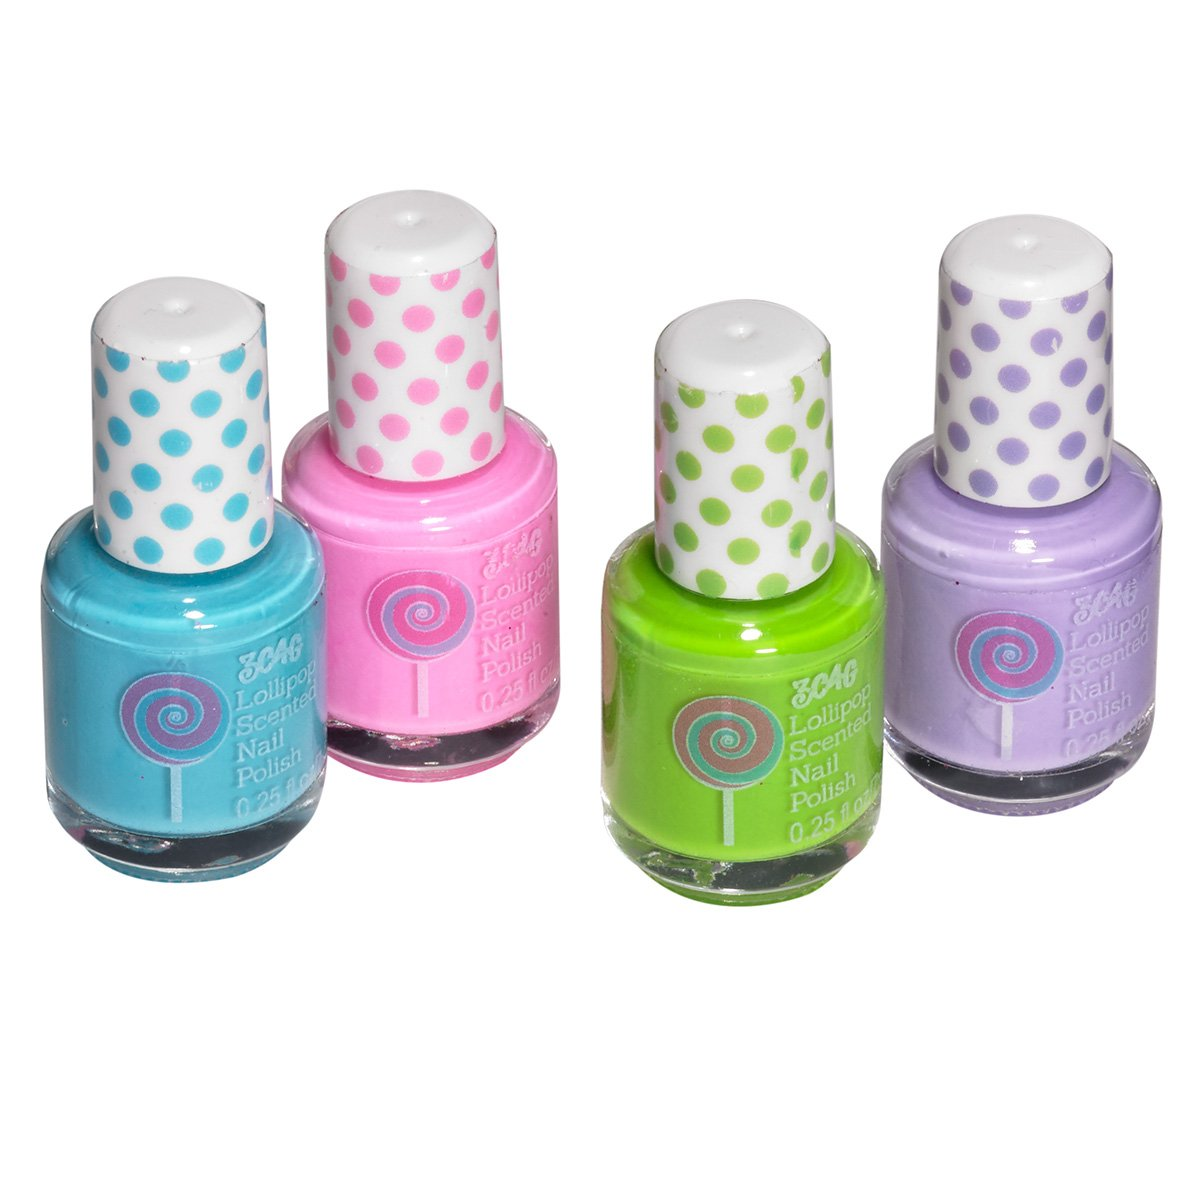 3C4G Sugar Shack Deluxe Pedi Party, Set of 2 by 3C4G (Image #5)